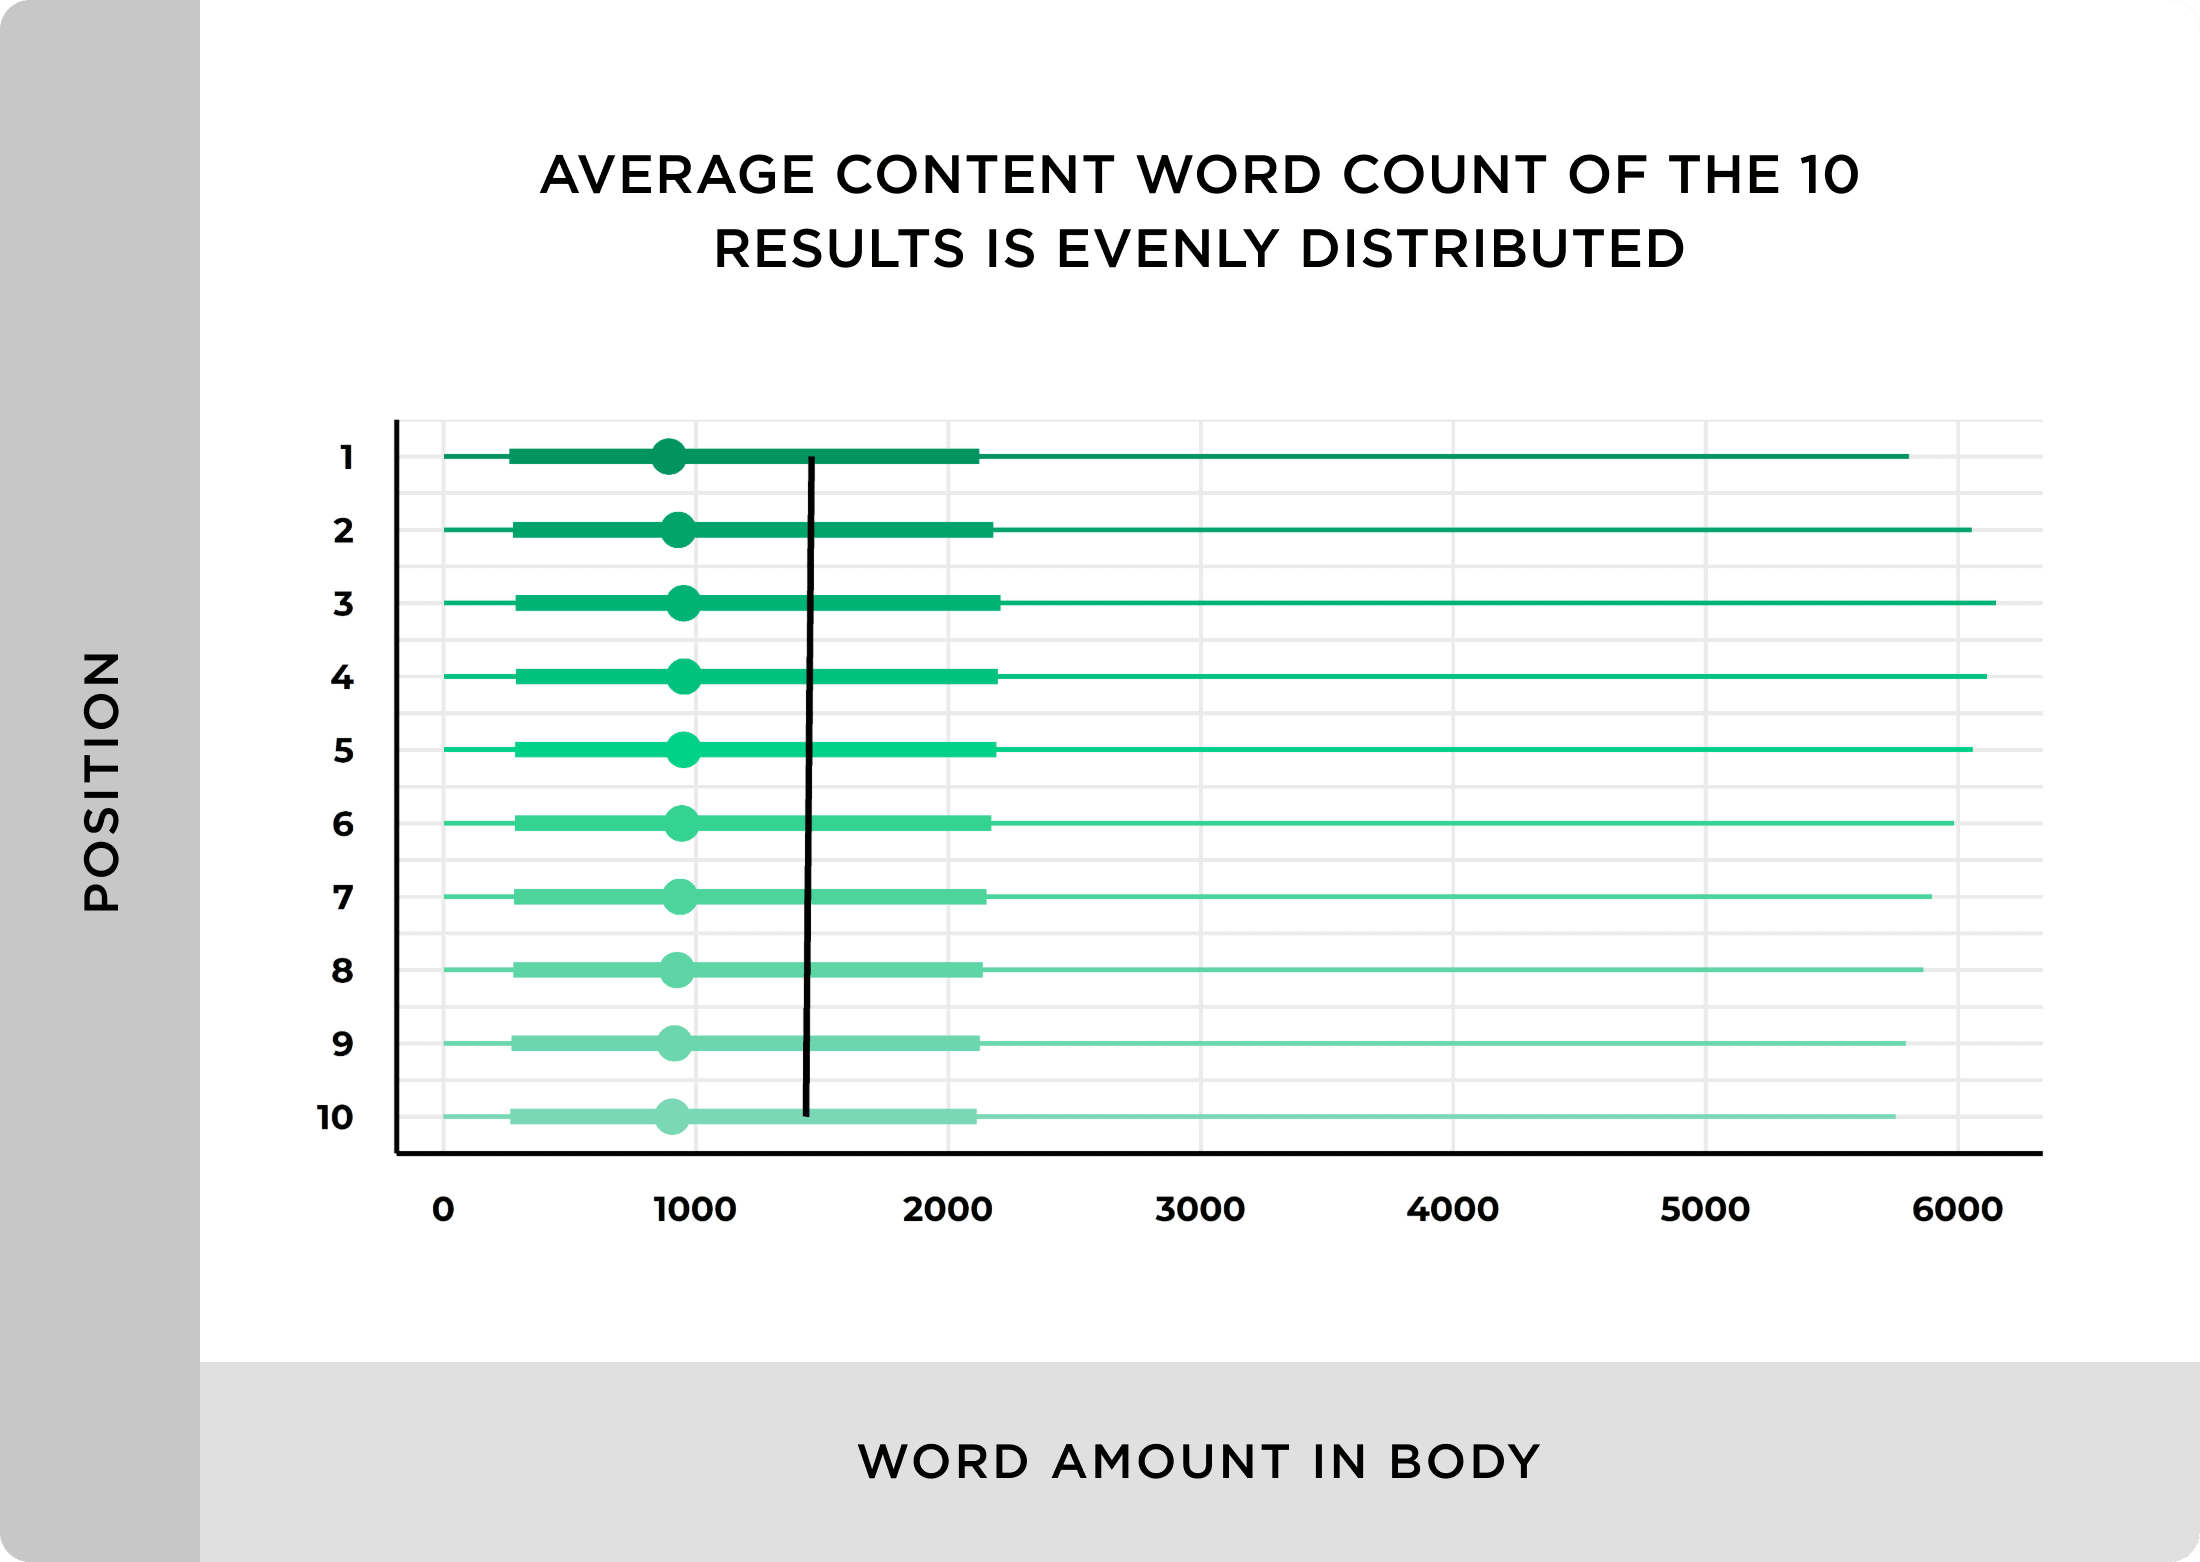 Average Content Word Count Of The 10 Results Is Evenly Distributed